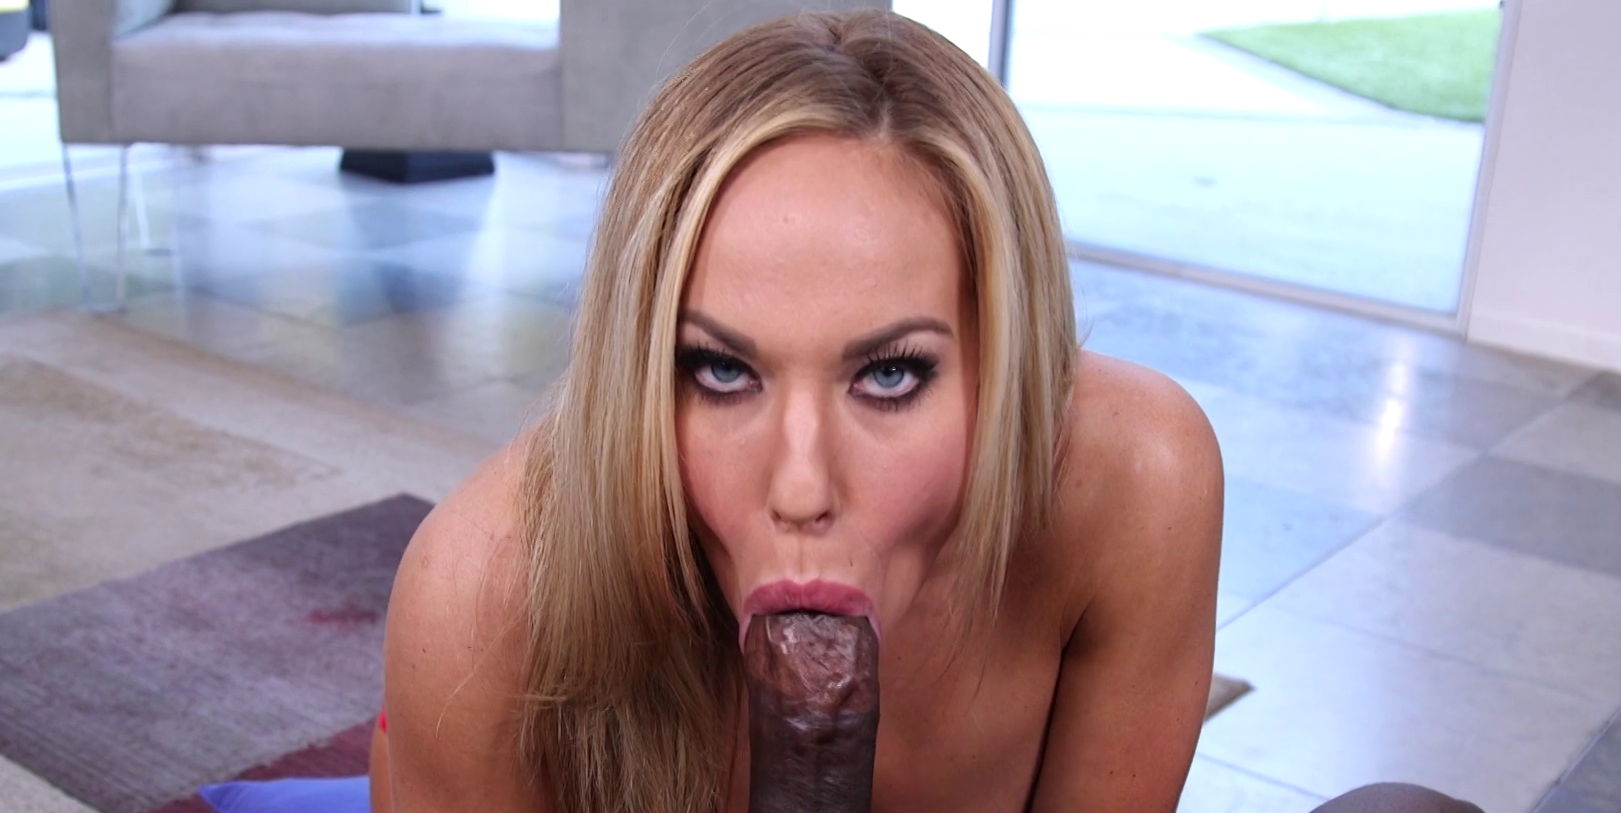 Top rated olivia austin porn pics of today